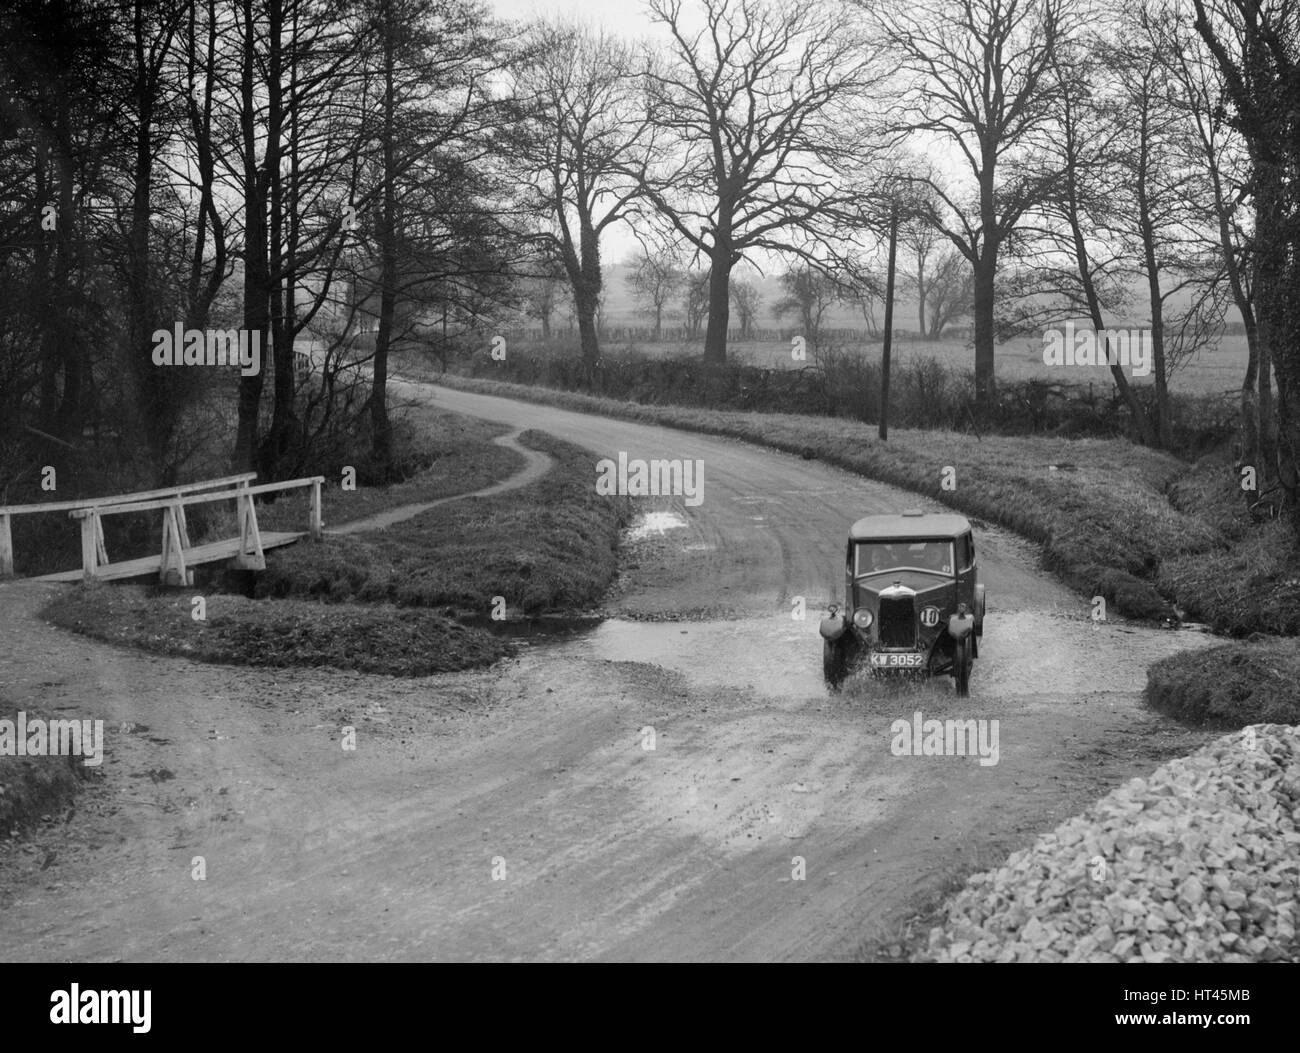 Riley 9 of HC Holm competing in the Ilkley & District Motor Club Trial, Yorkshire, 1930s. Artist: Bill Brunell. - Stock Image